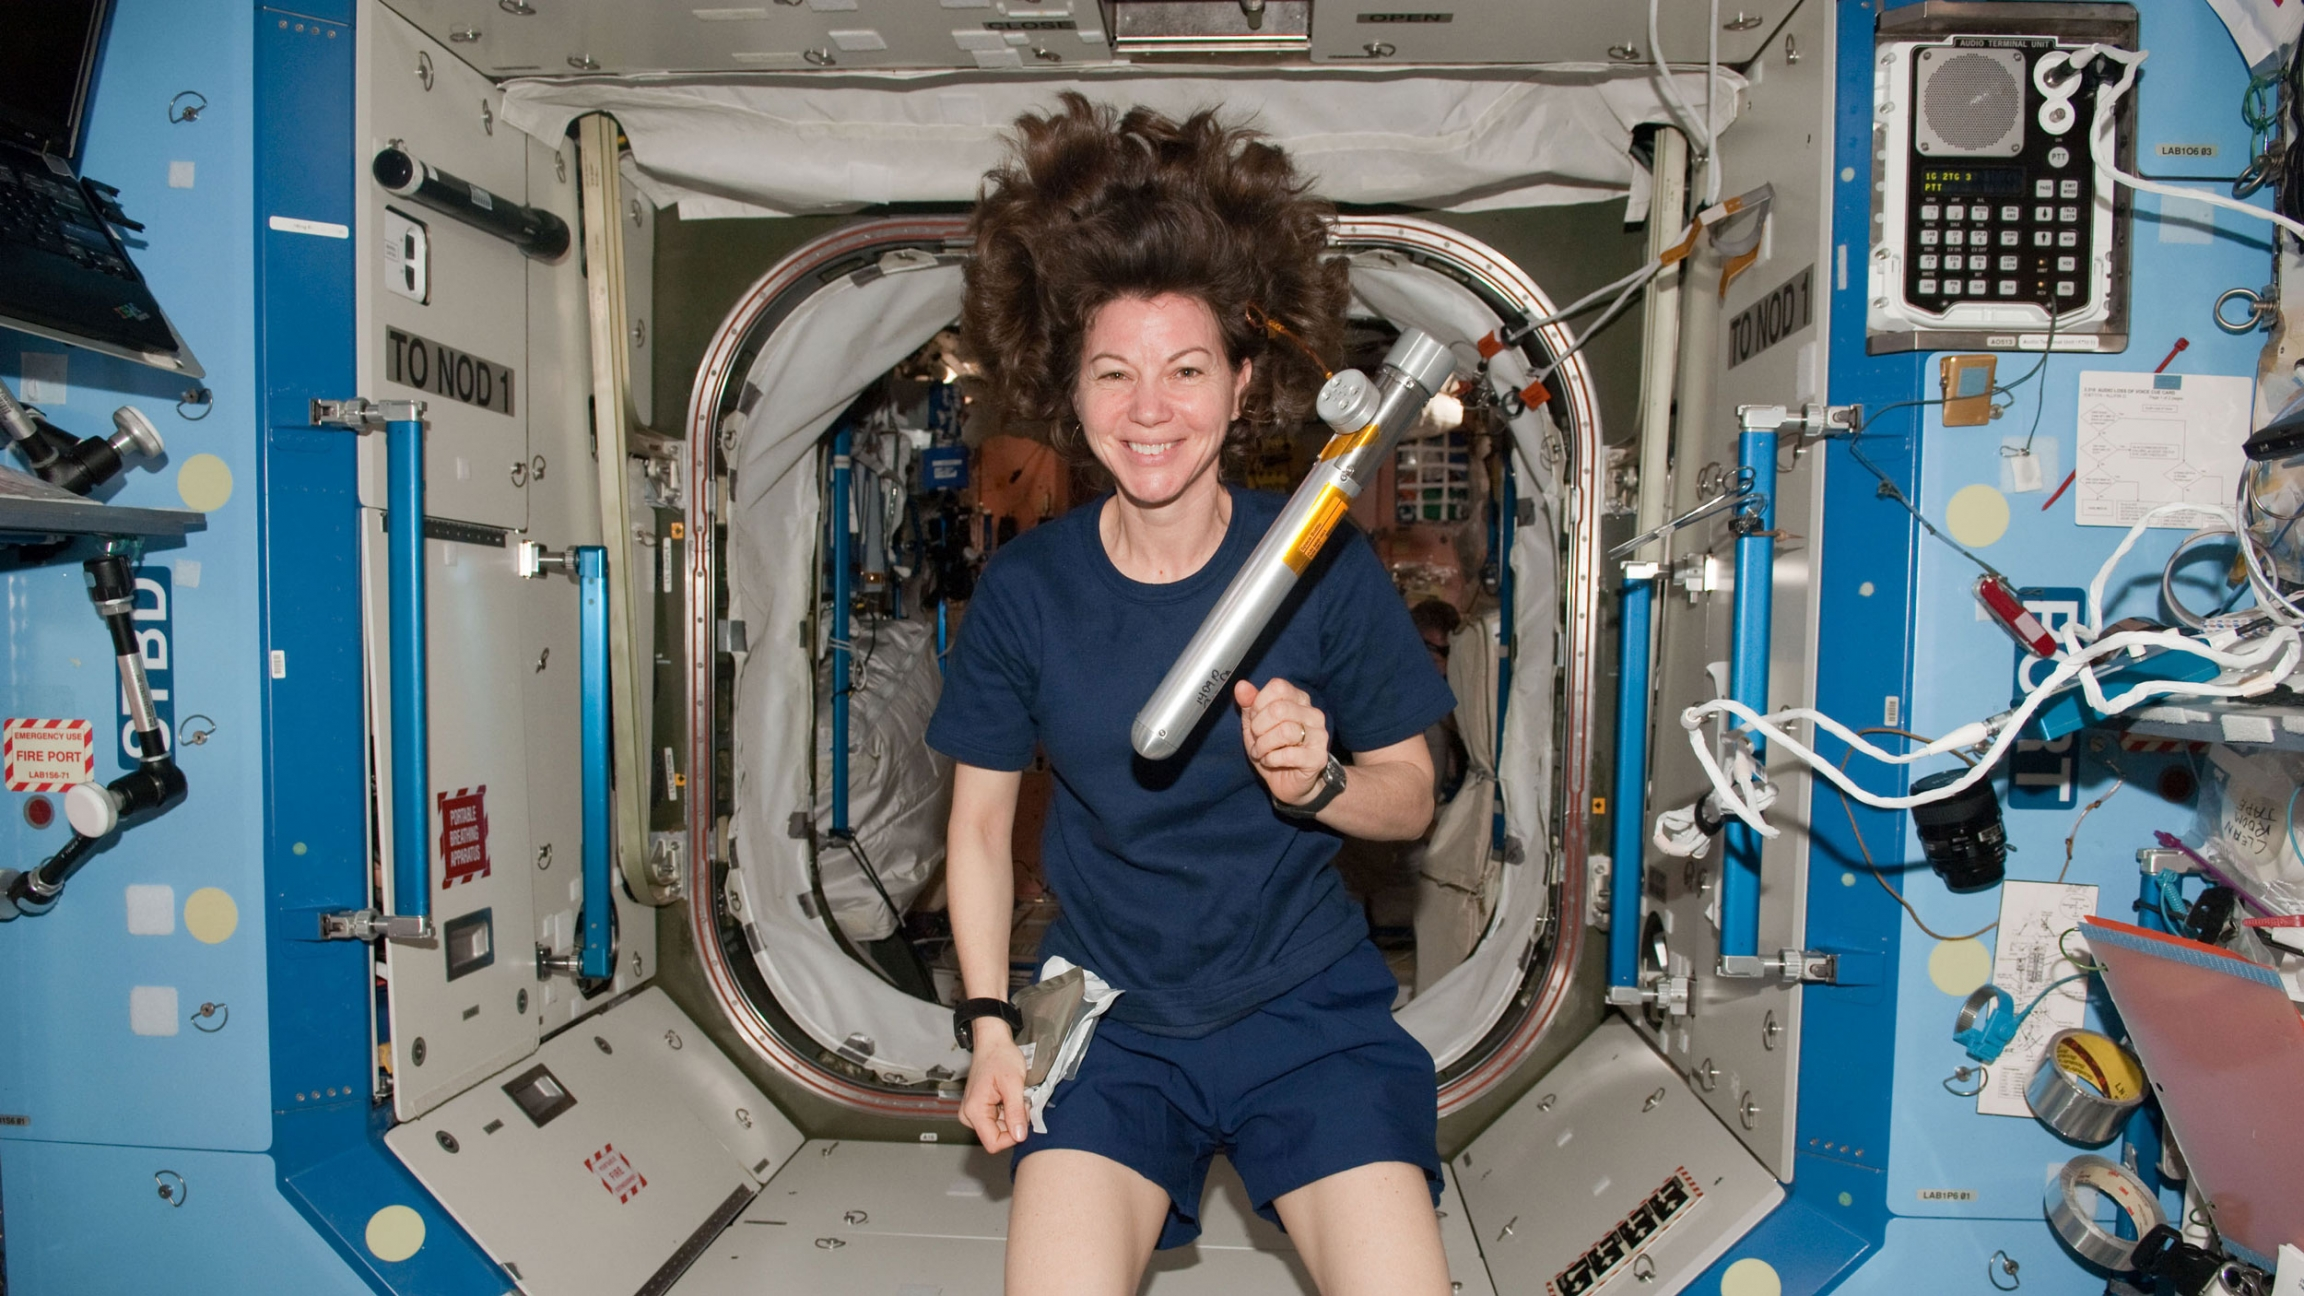 A woman floats in a spacecraft